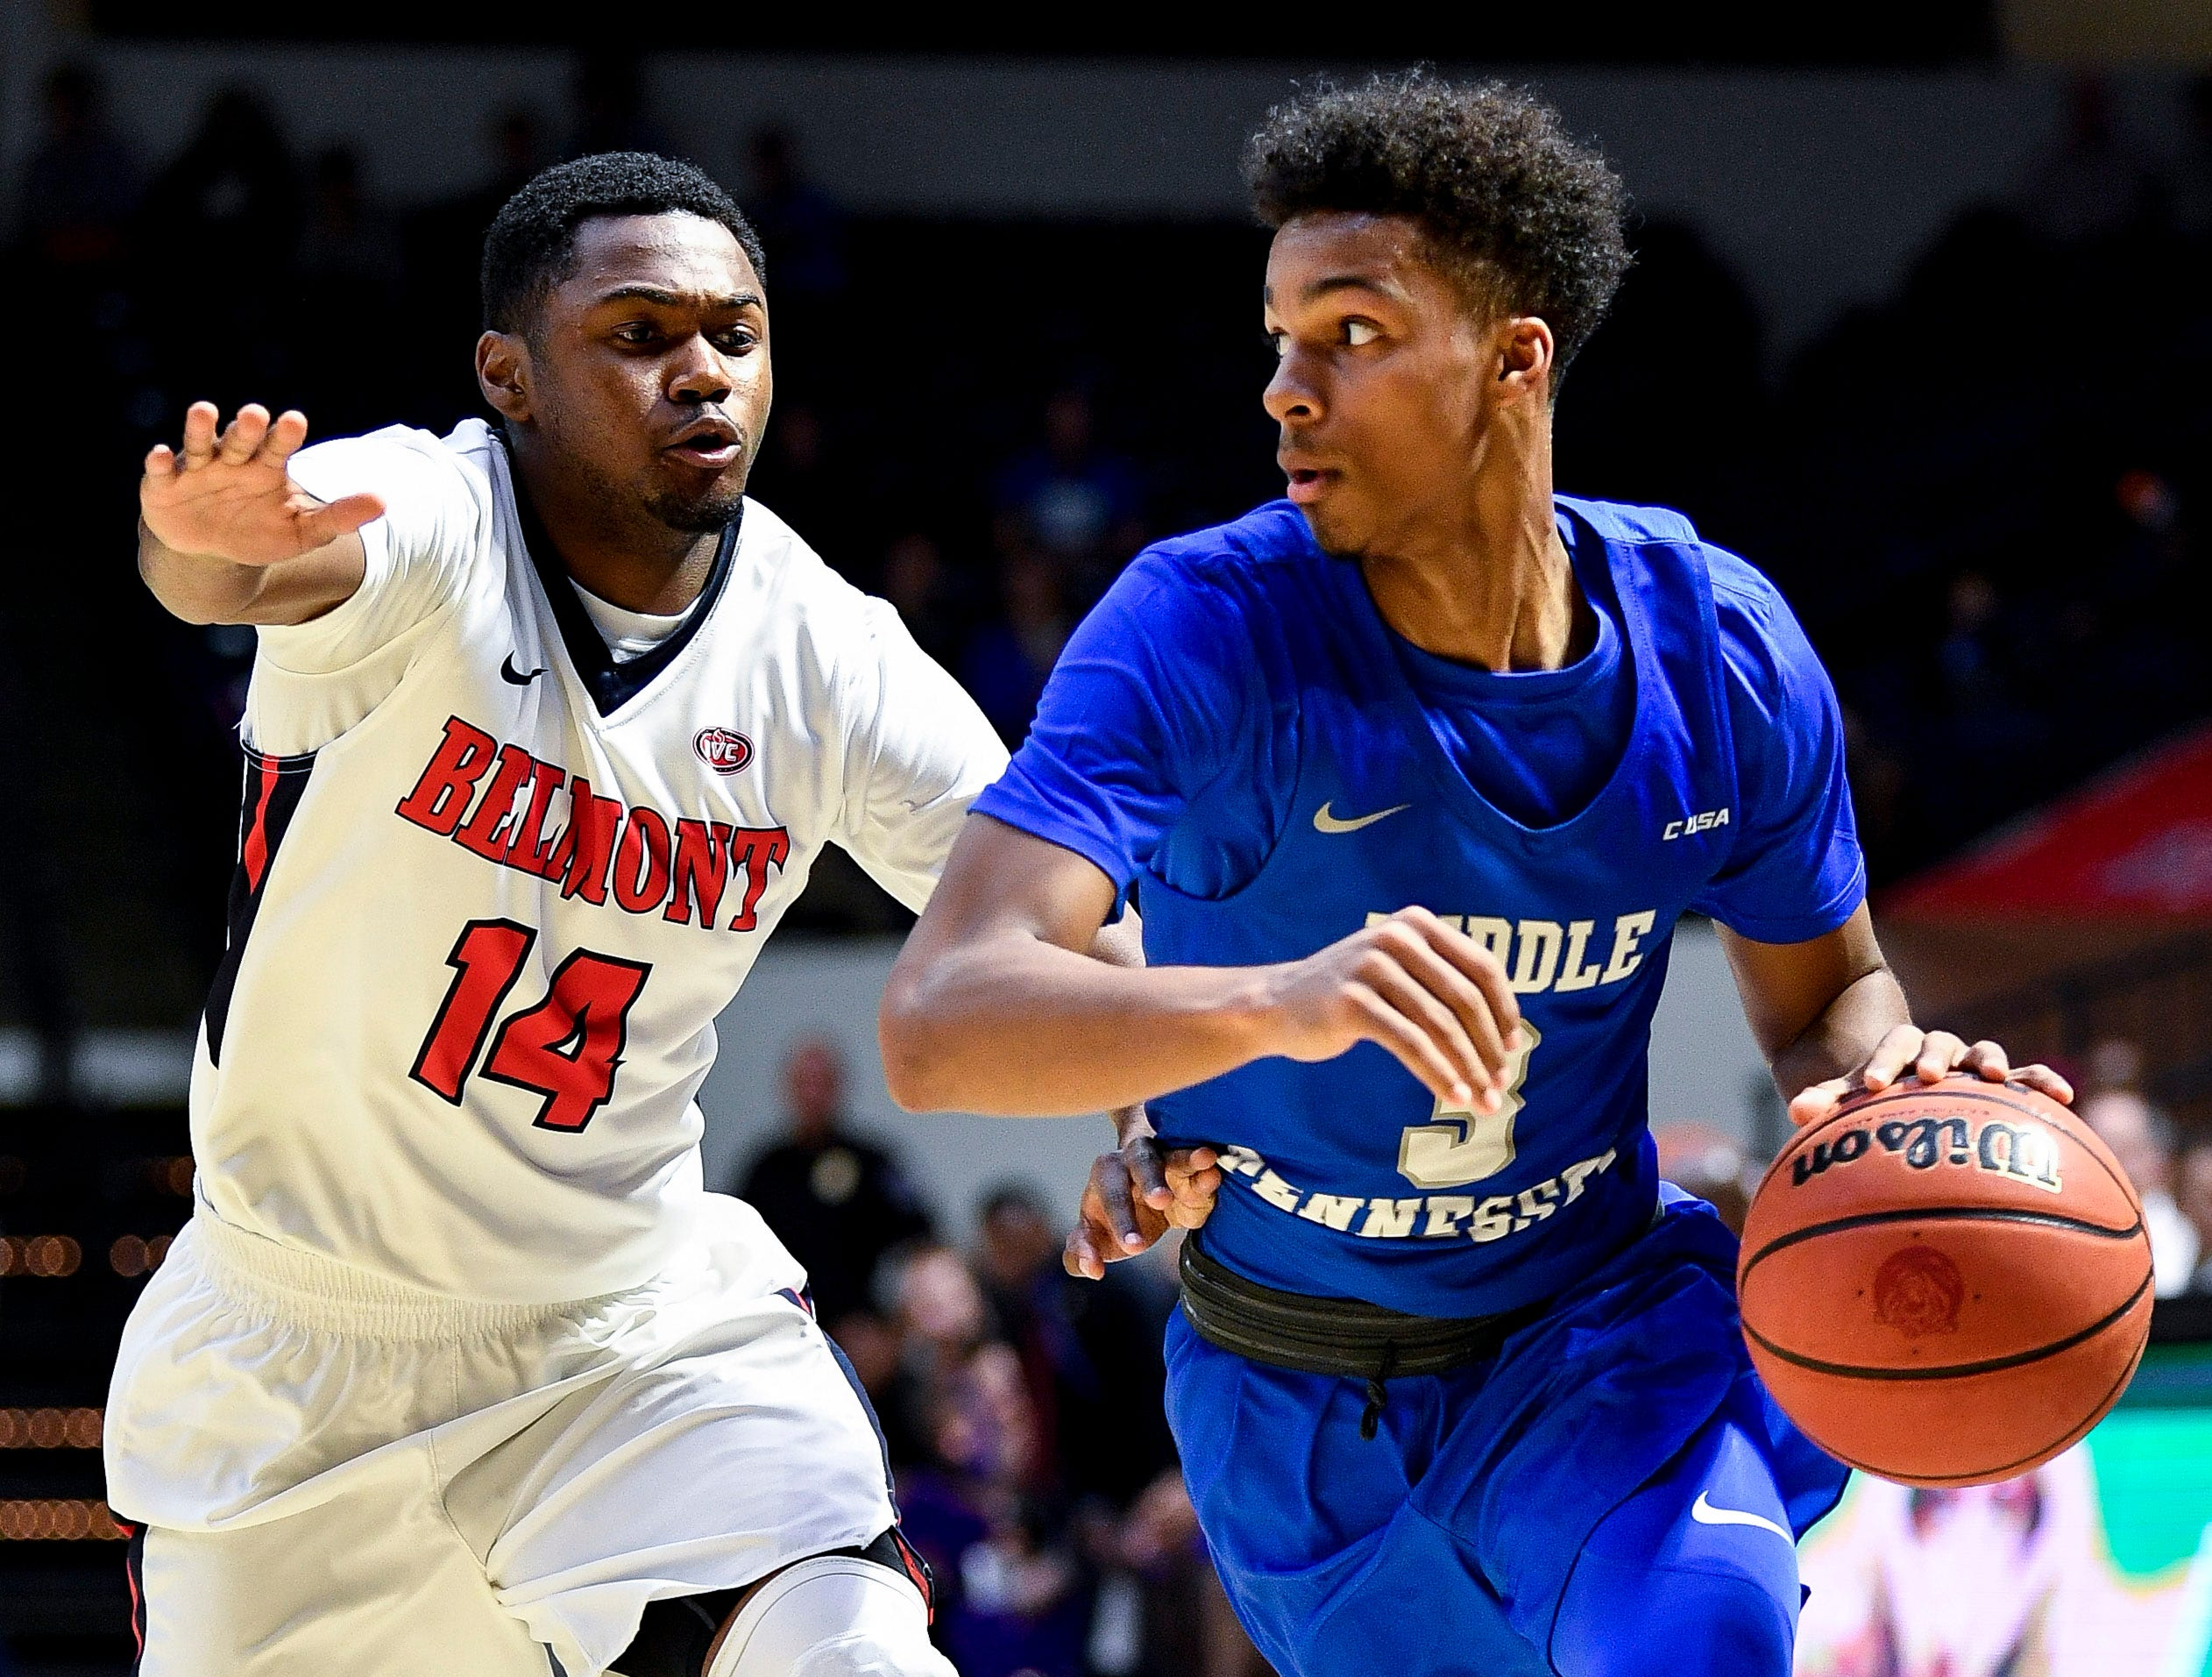 MTSU guard Donovan Sims (3) advances past Belmont guard Nick Hopkins (14) during the first half at the Curb Event Center Arena in Nashville, Tenn., Monday, Nov. 12, 2018.